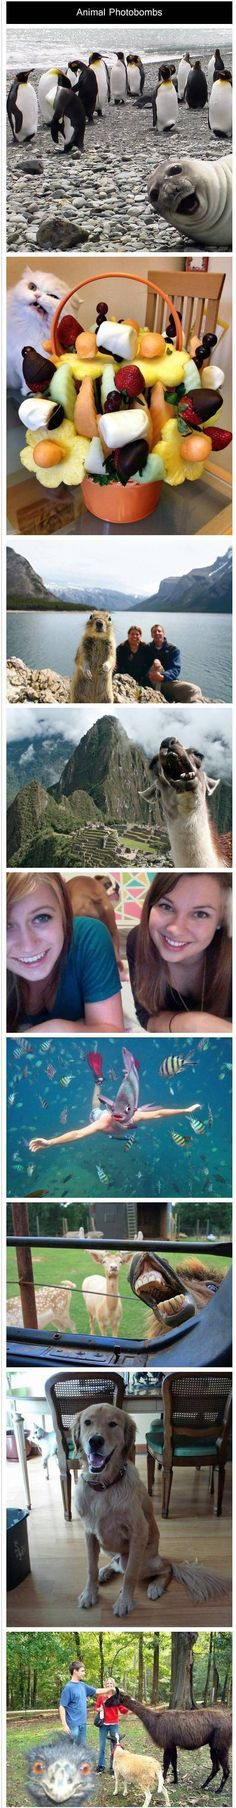 Animals Photobomb (Compilation),  Click the link to view today's funniest pictures!